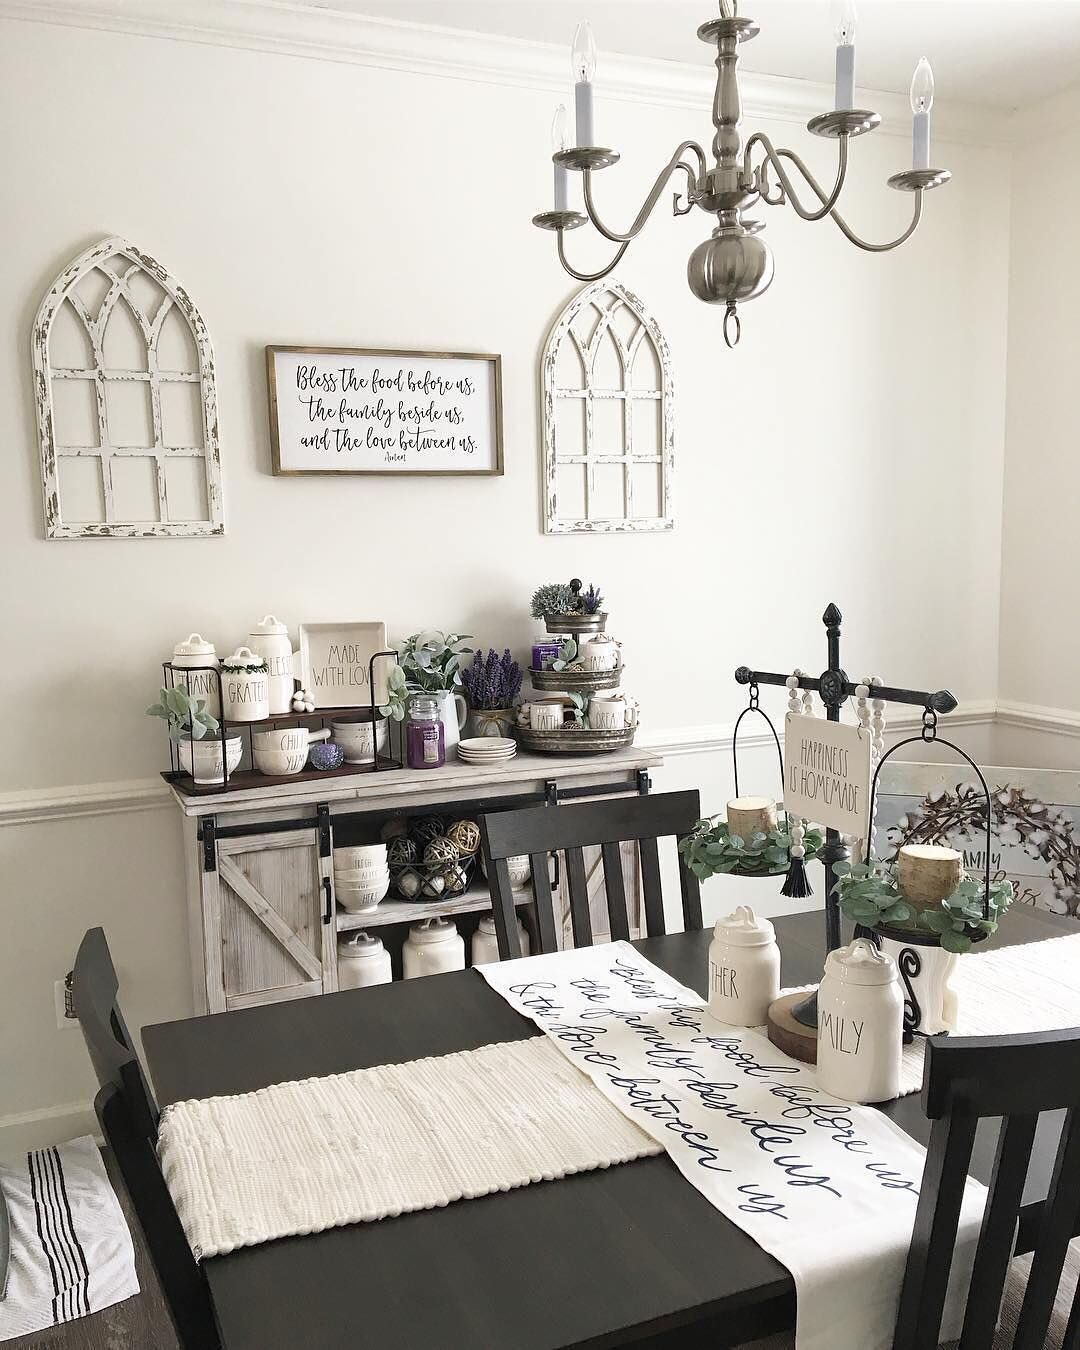 Kirkland S On Instagram The Dining Room Table Is A Place For Laughter Joy And Showing Off Your Favorite Decor P Home Decor Kirkland Home Decor Inside Decor